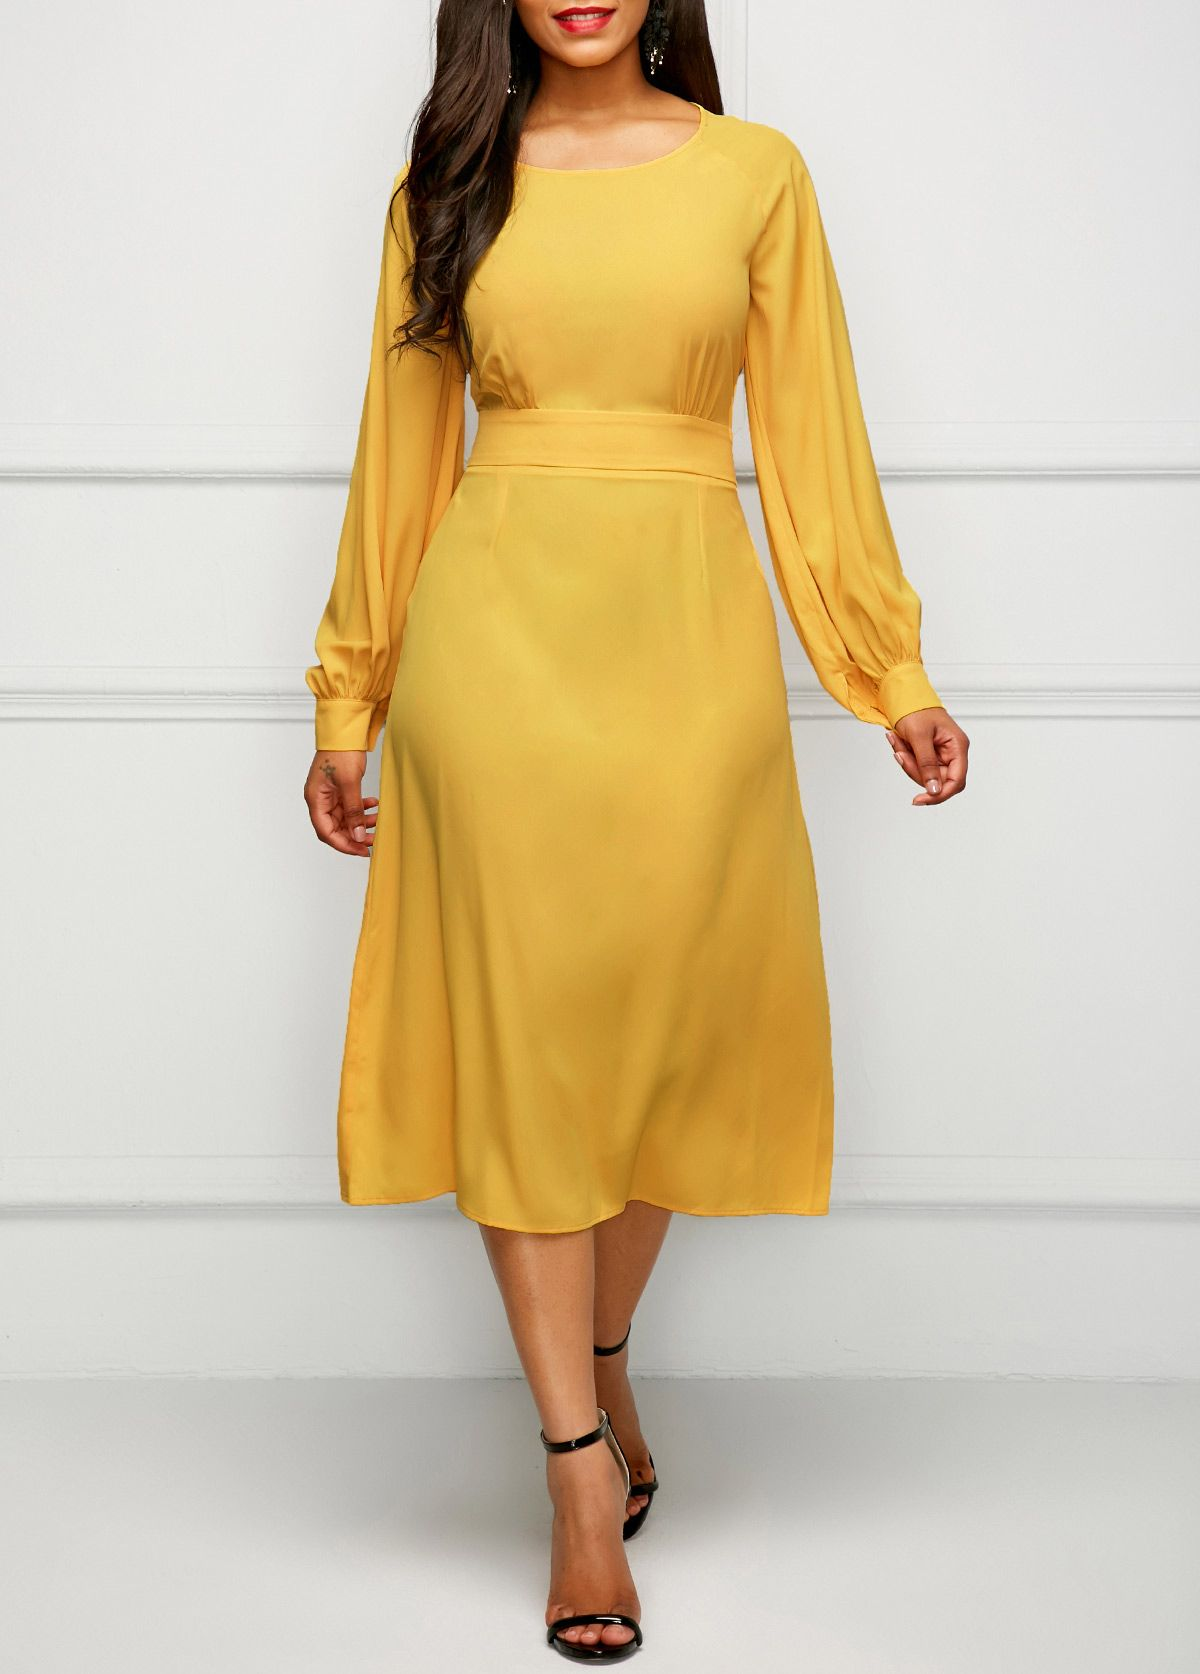 Yellow Band Waist Long Sleeve Dress  6be8f26c2c98